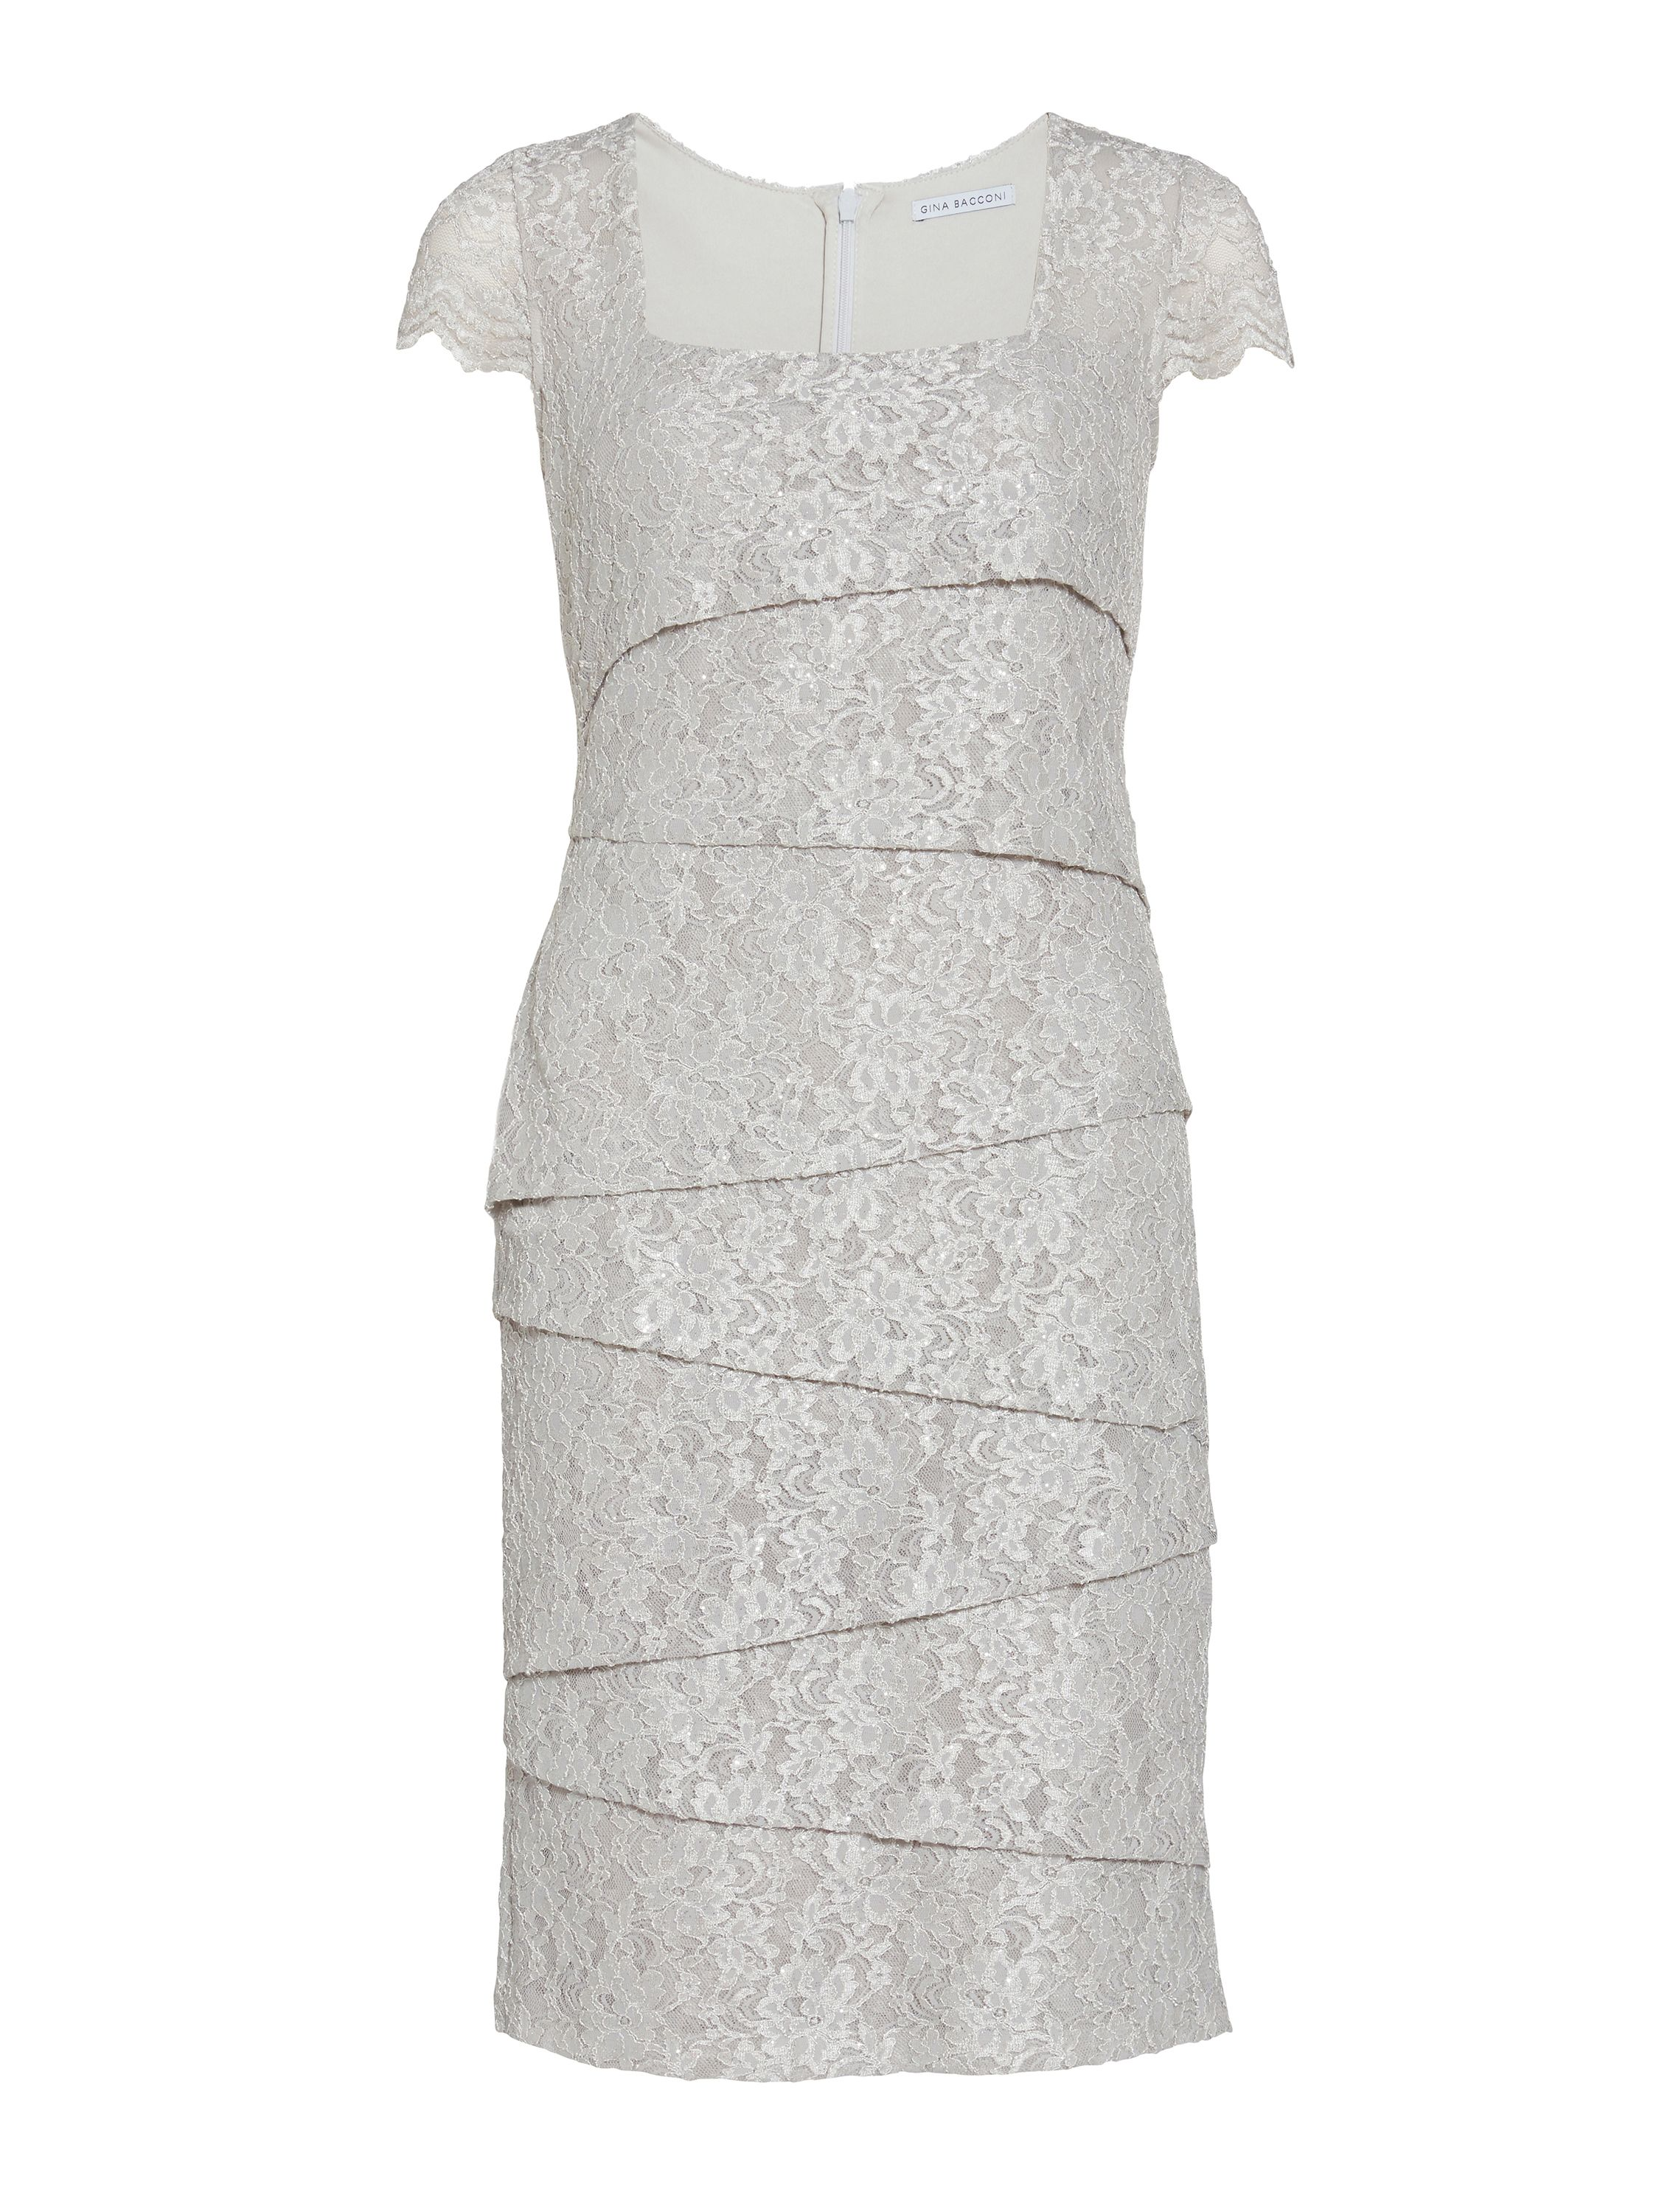 Gina Bacconi Layered lace dress, Silver